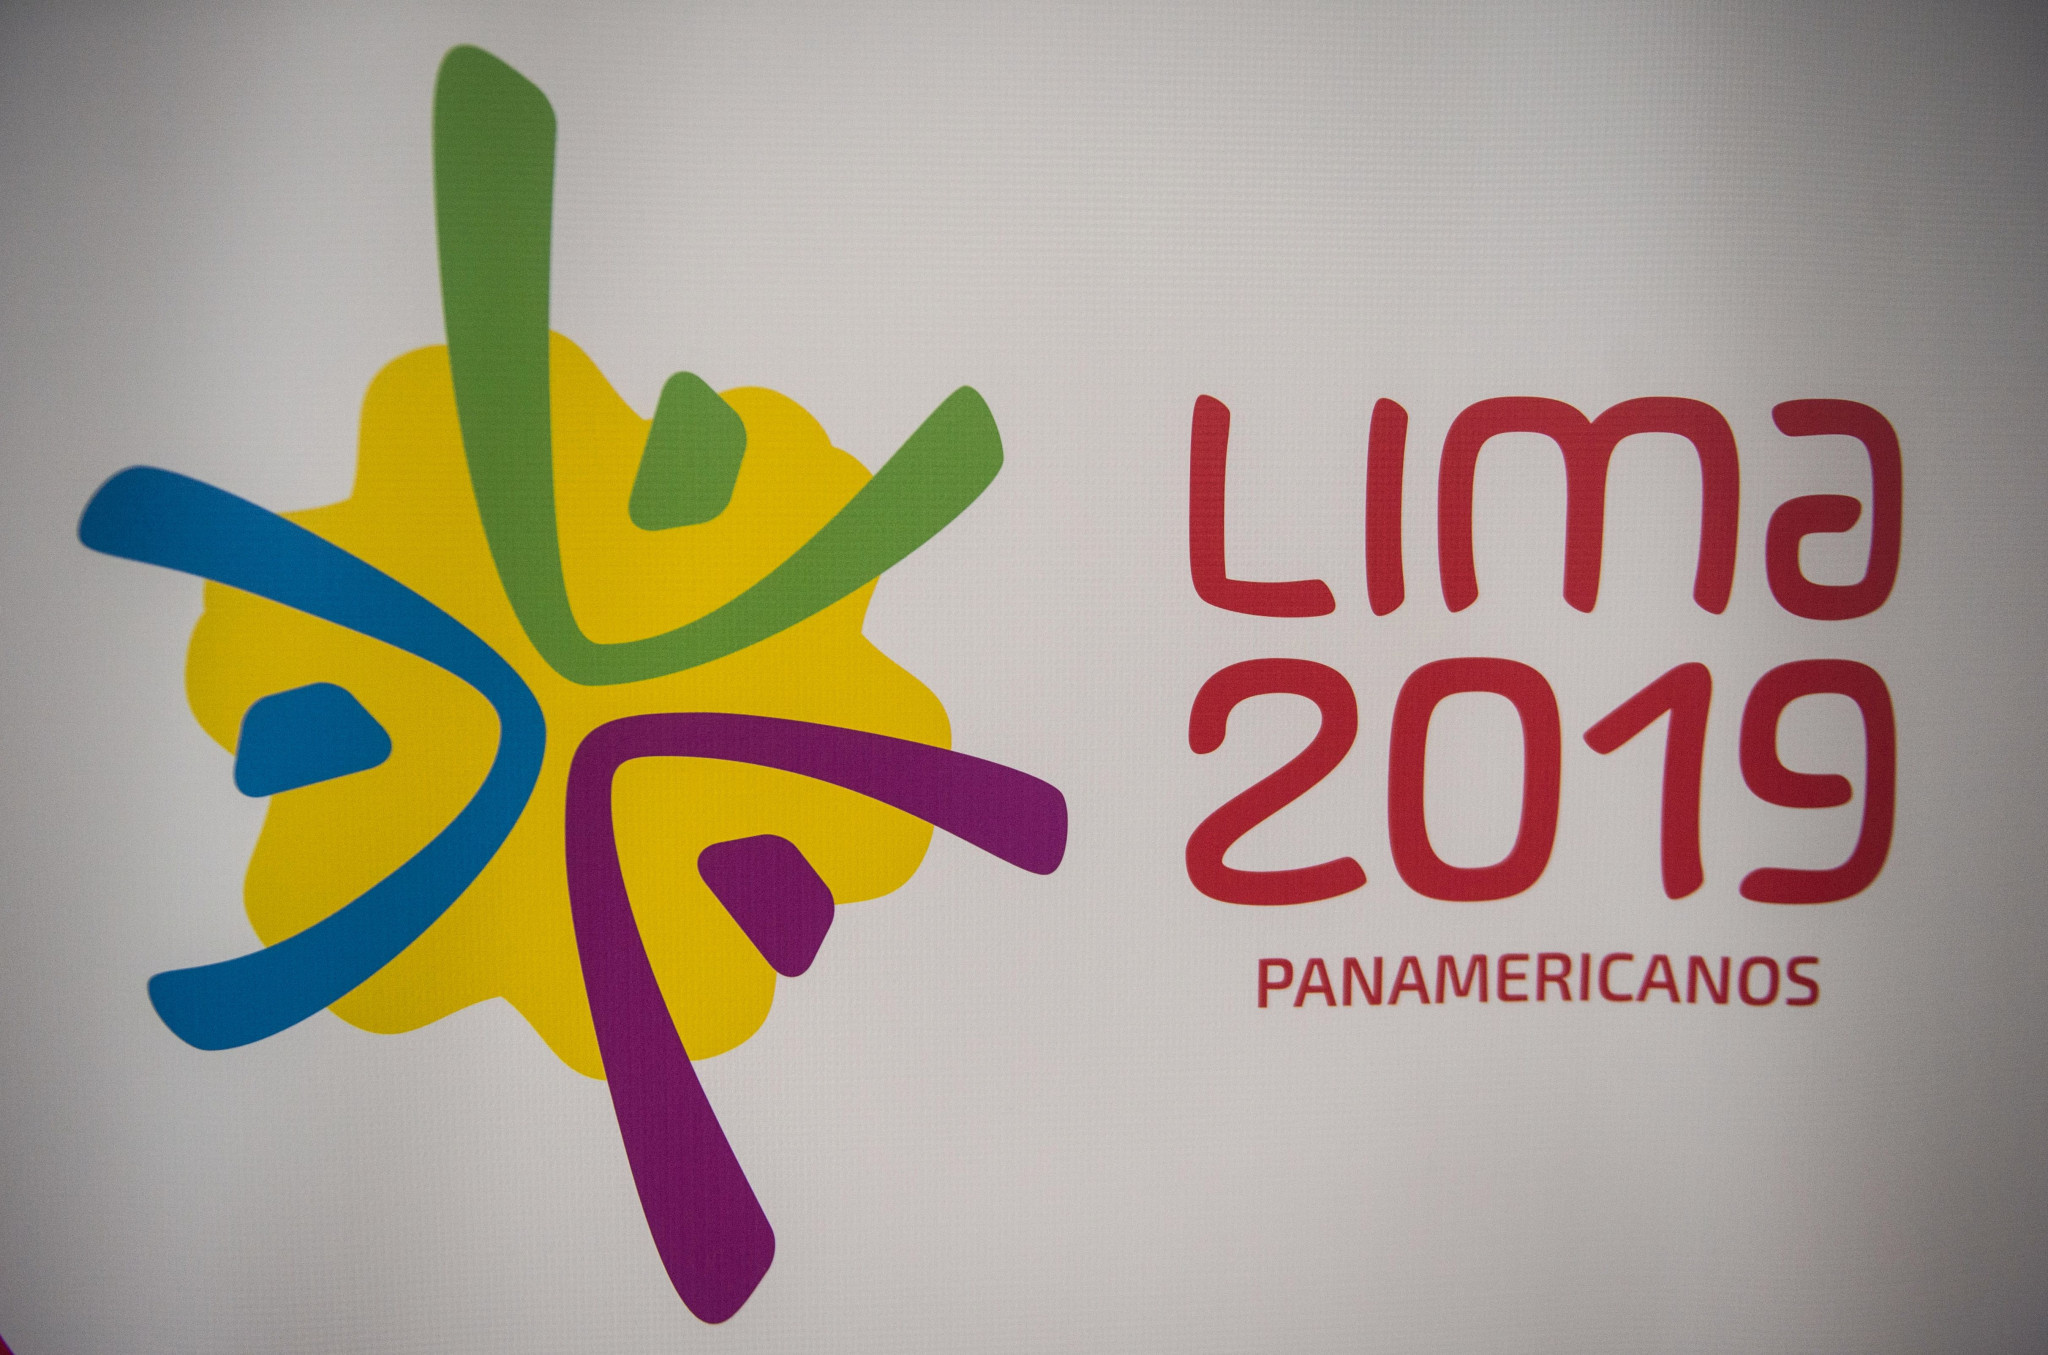 More than 200 rowers secured places at next year's Pan American Games in Lima through a qualification regatta in Rio de Janeiro ©Lima 2019